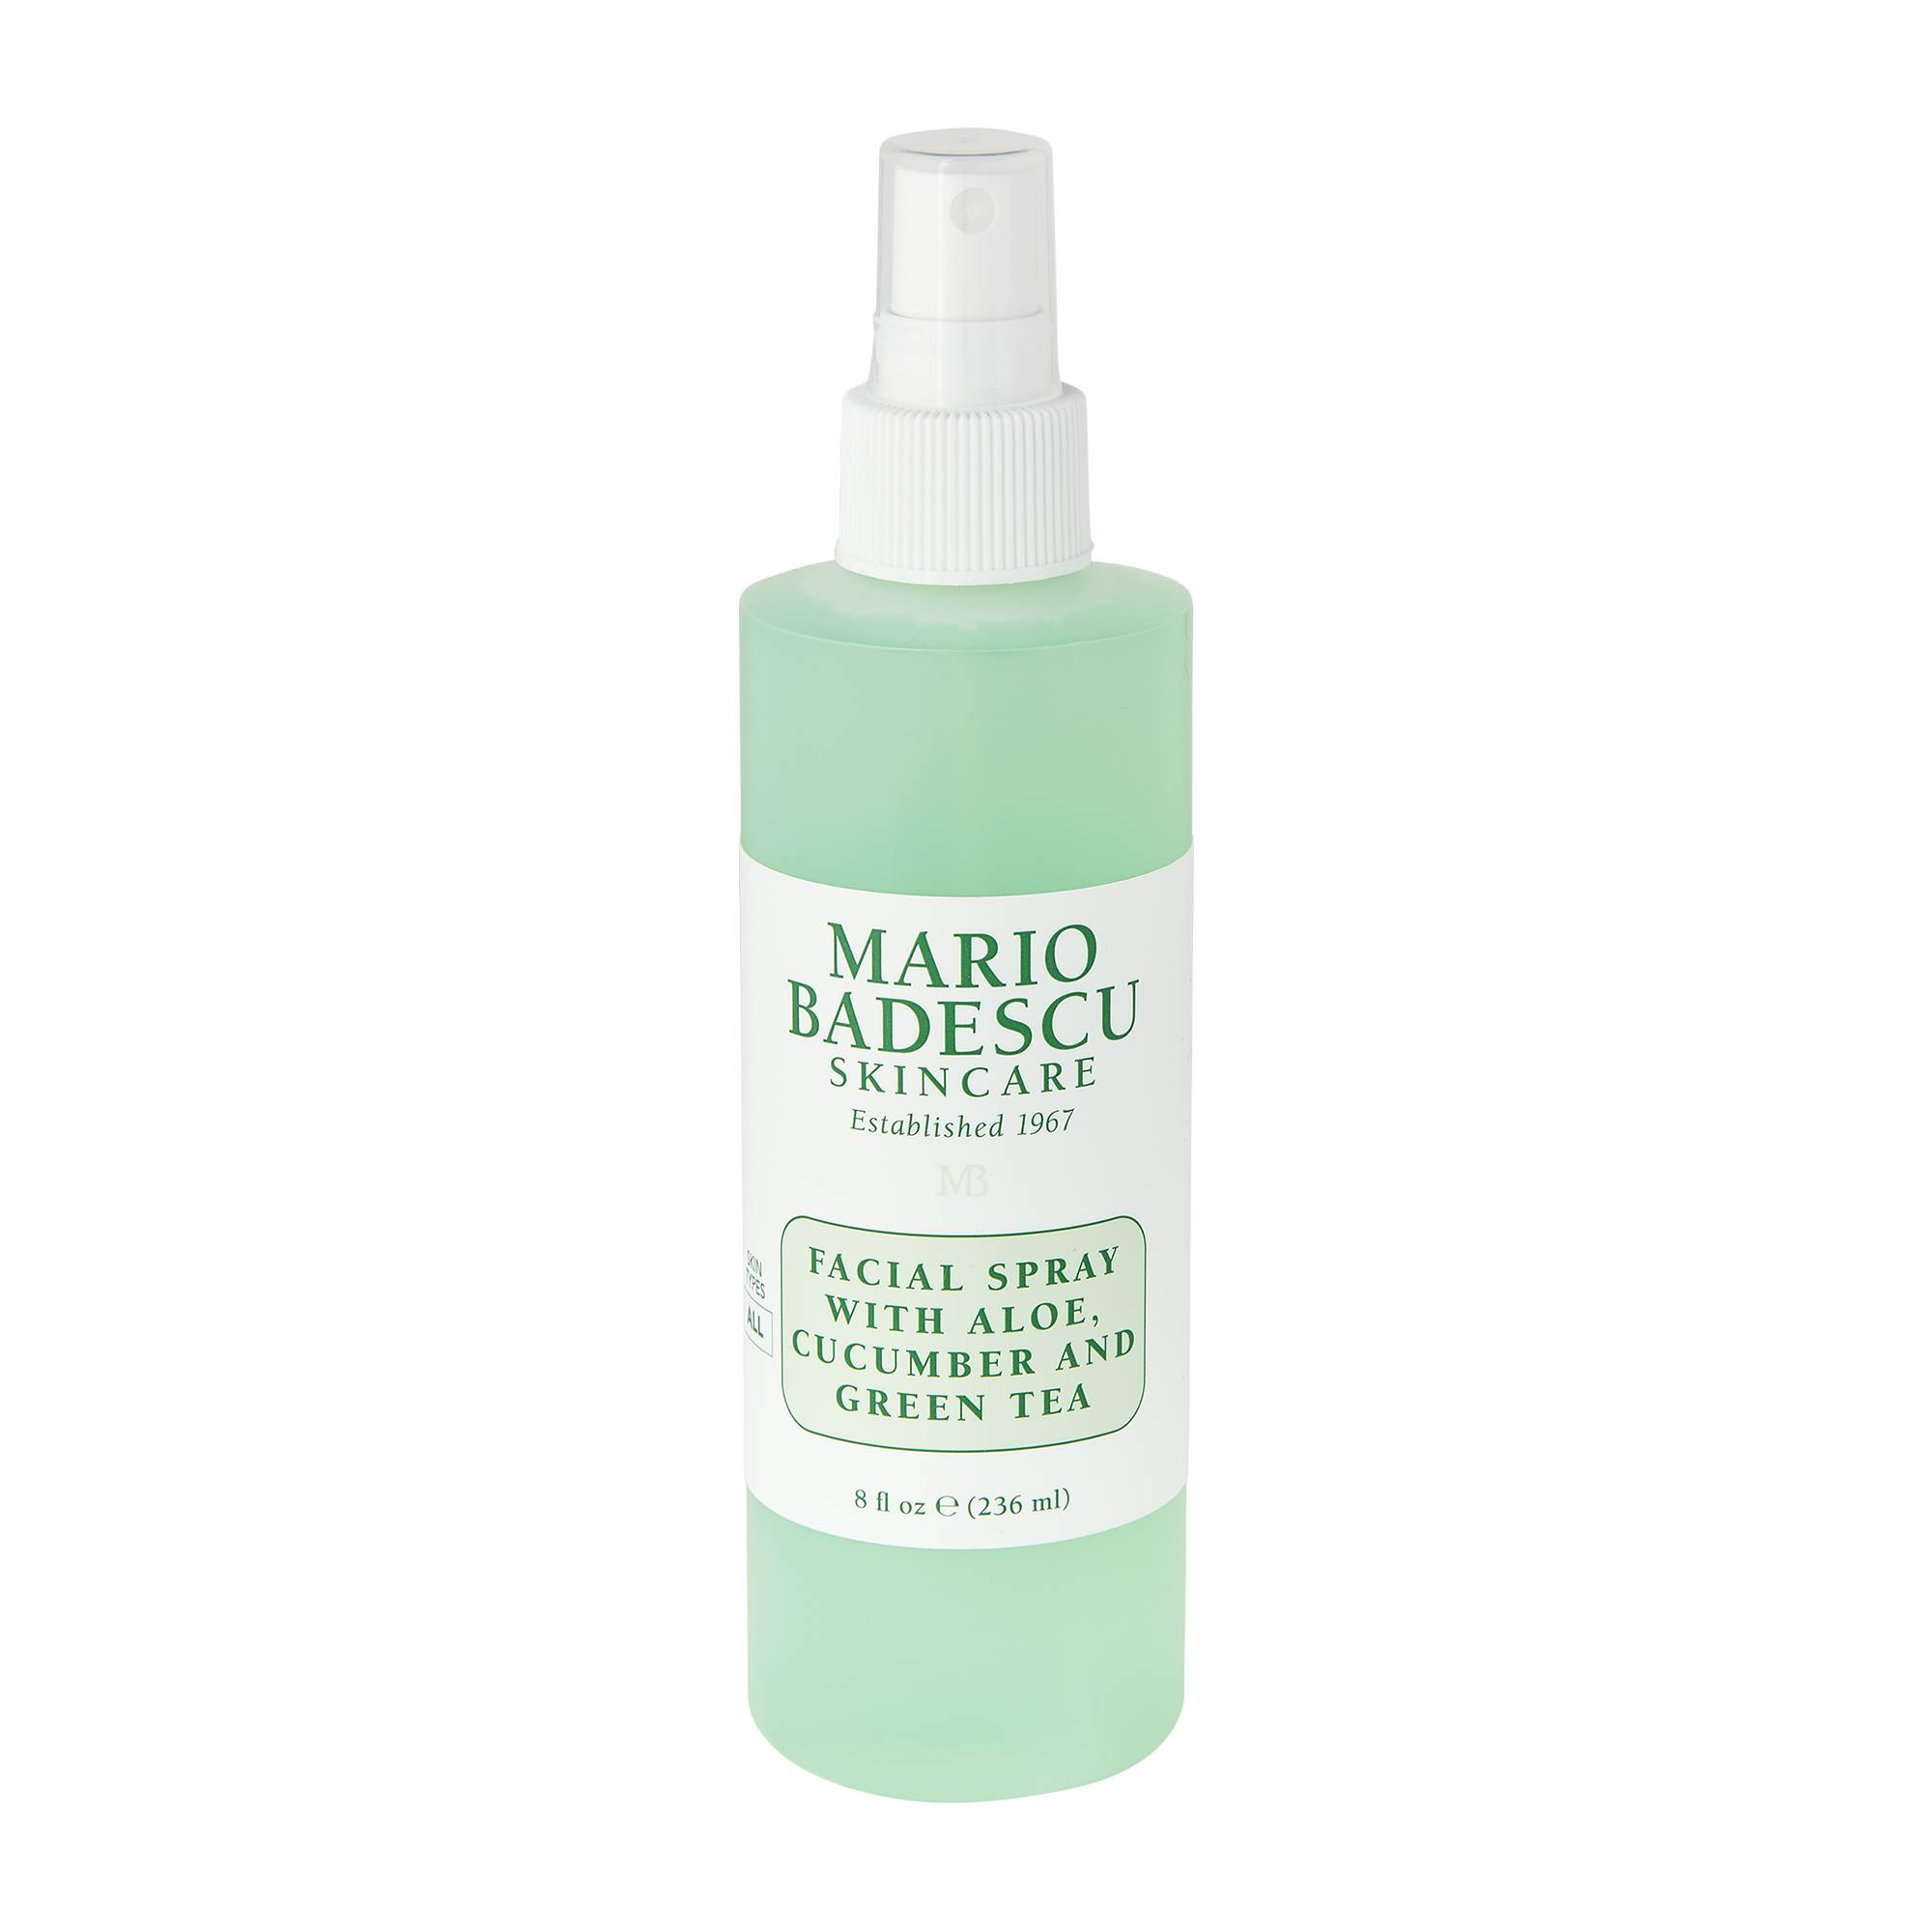 Mario Badescu Facial Spray with Aloe Cucumber And Green Tea 236ml